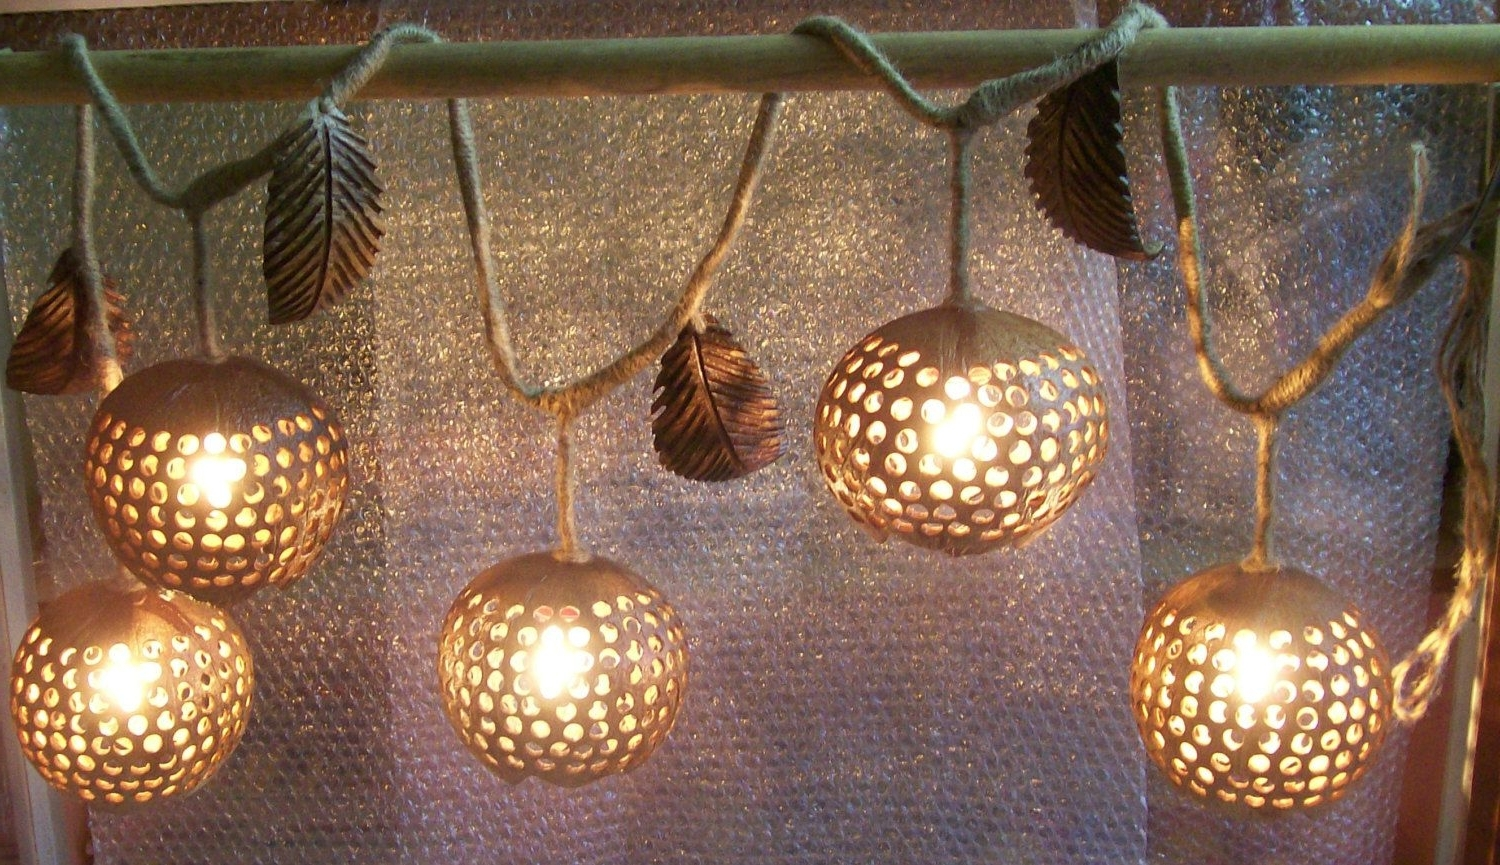 Outdoor Hanging Decorative Lights Within Well Known Wood Hanging Lamp Ivy 5 Ball Coconut Shell Fruit Lanterns Ceiling (View 10 of 20)